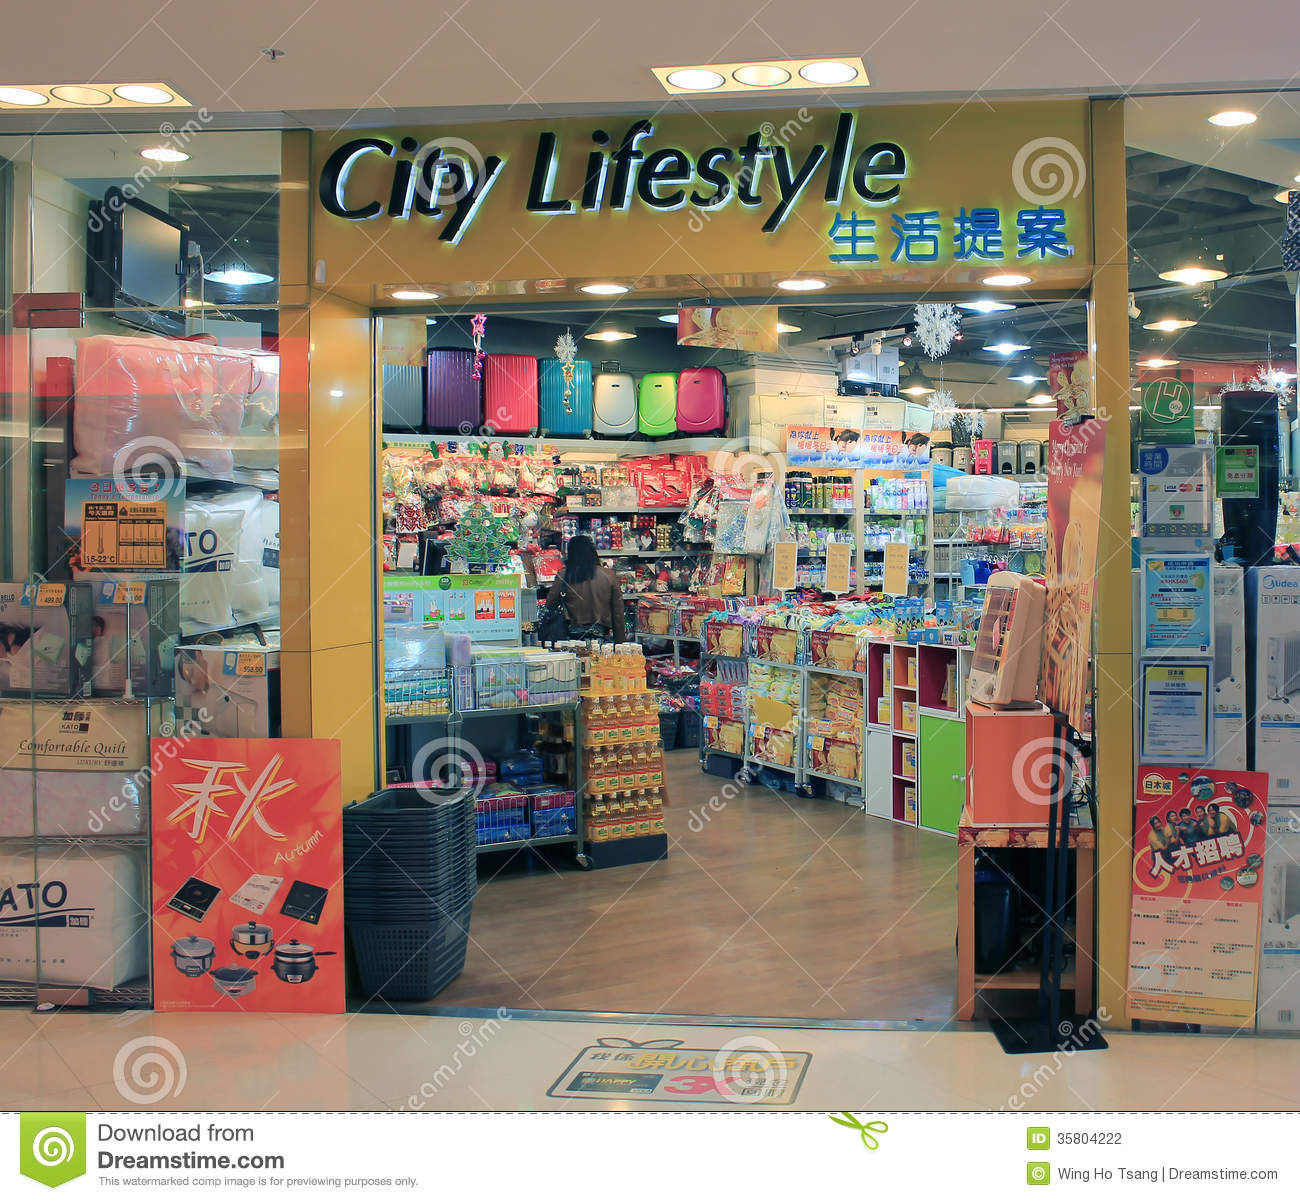 Hong Kong Shopping: City Lifestyle Shop In Hong Kong Editorial Photography